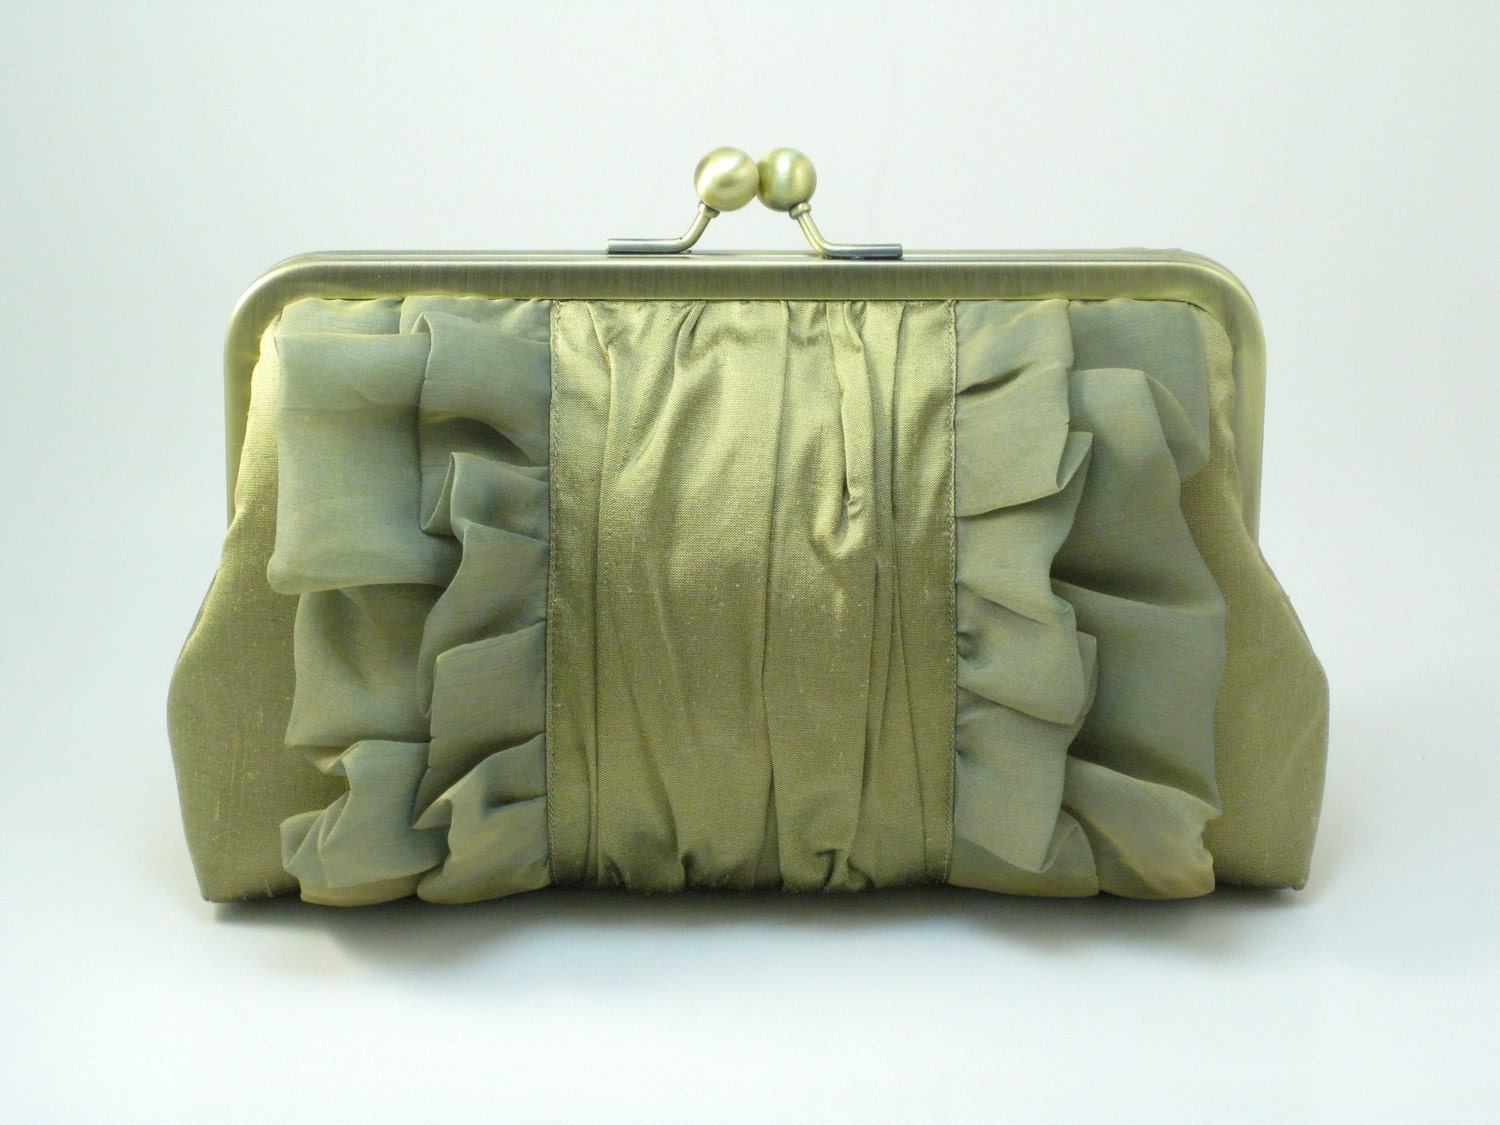 Bridal or Evening Clutch Bag - Golden Olive CHIFFON RUFFLES